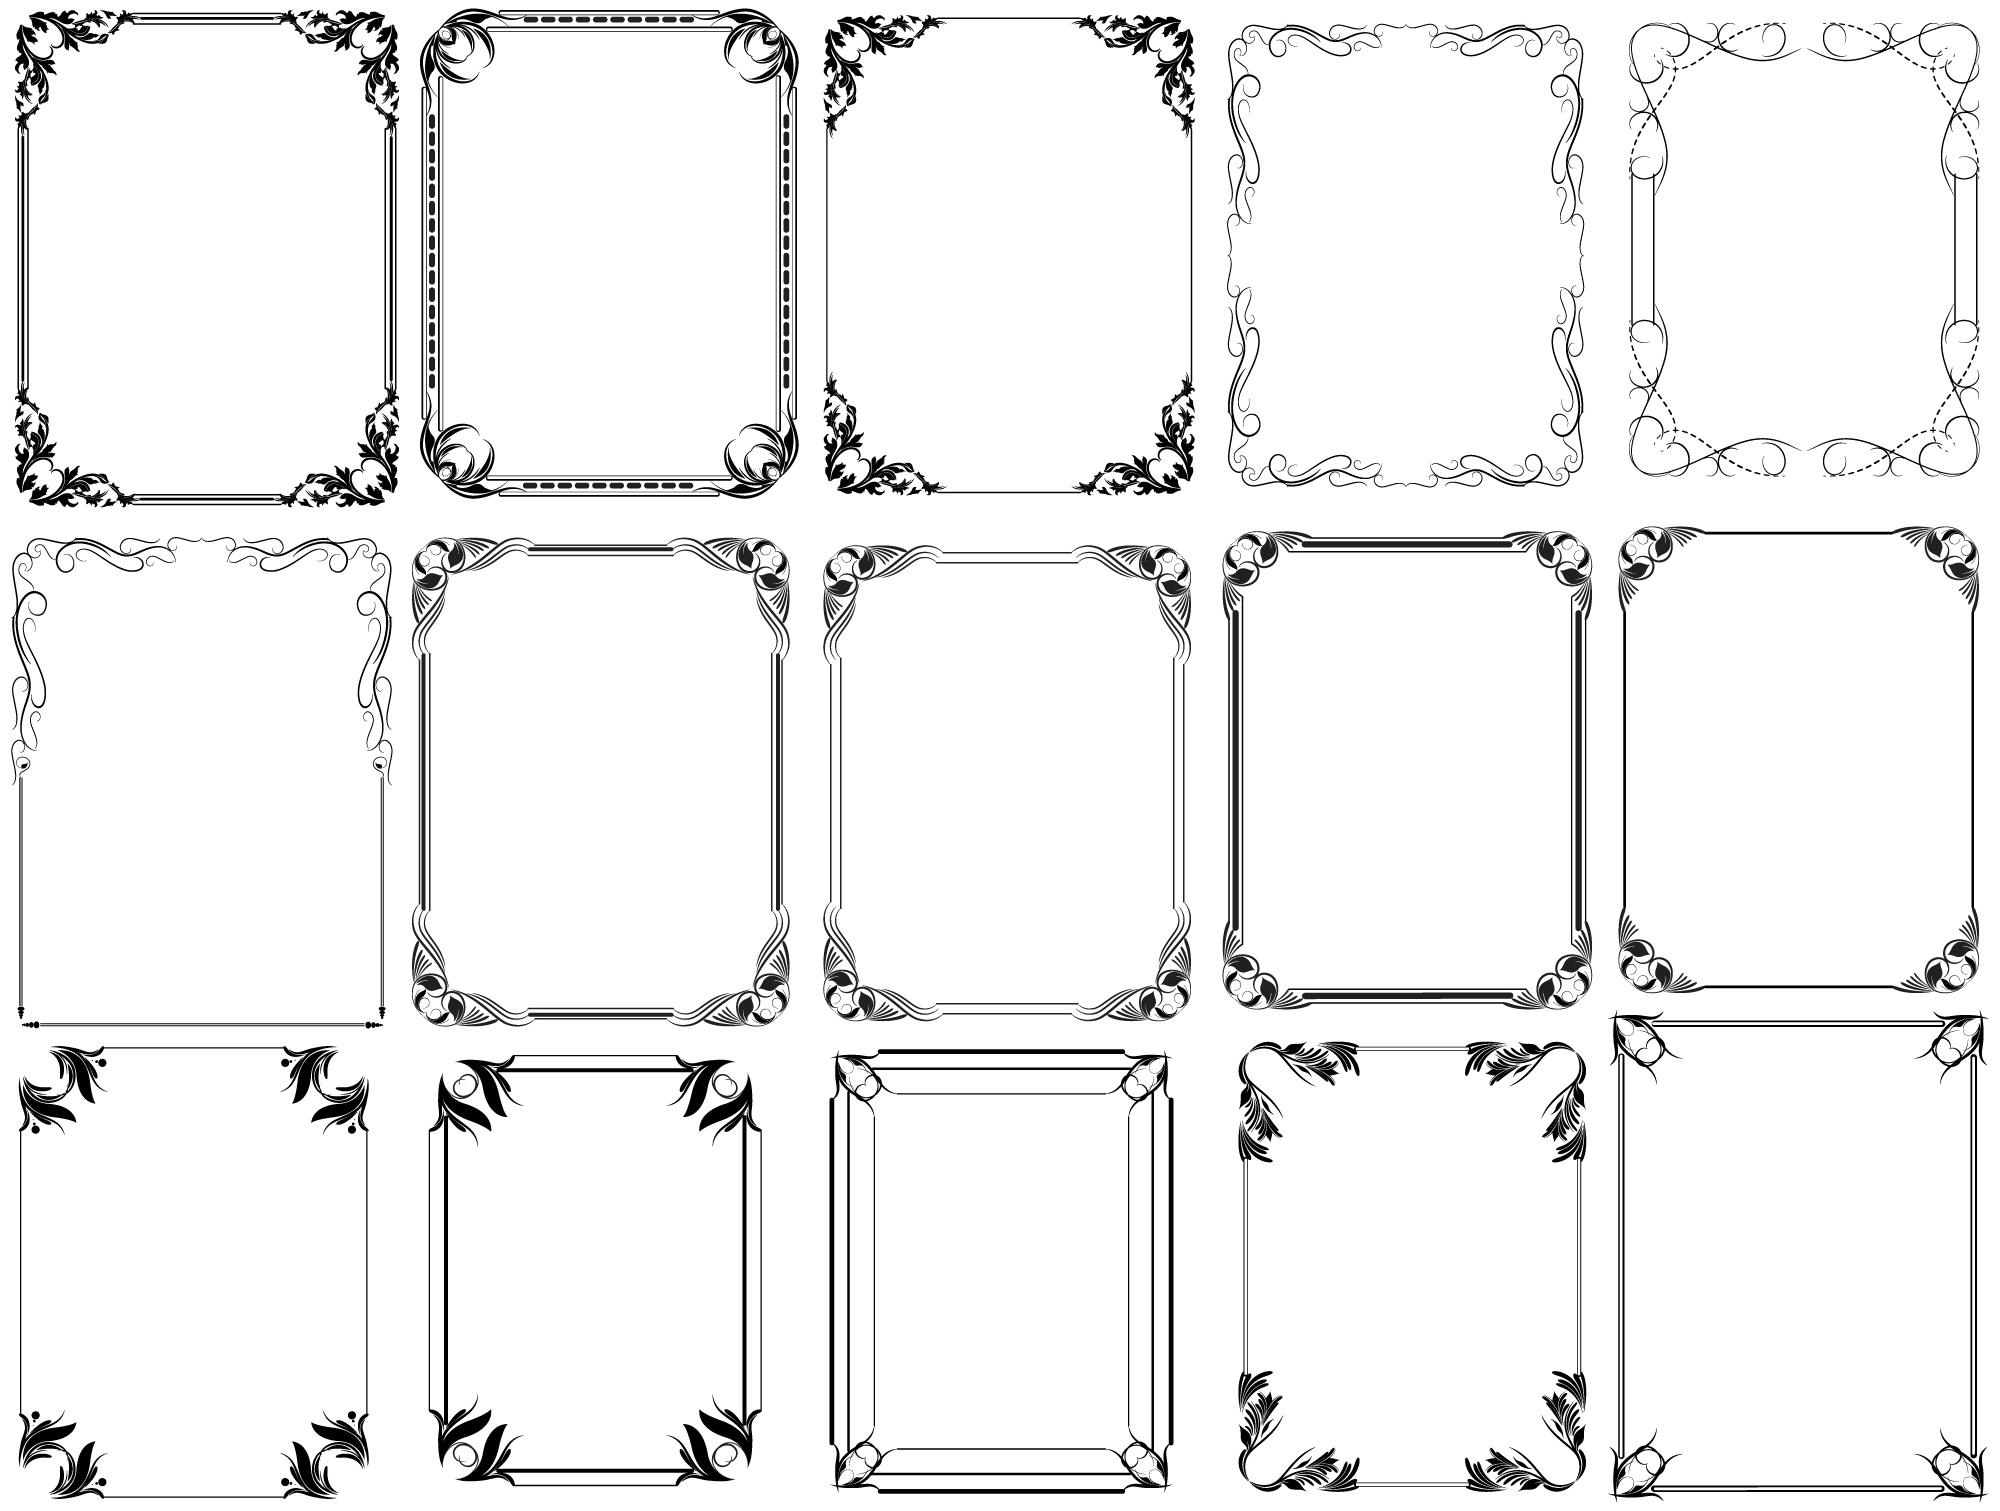 2000x1511 Free Photoshop Vintage Frames Brushes, Shapes, Png, Pictures And